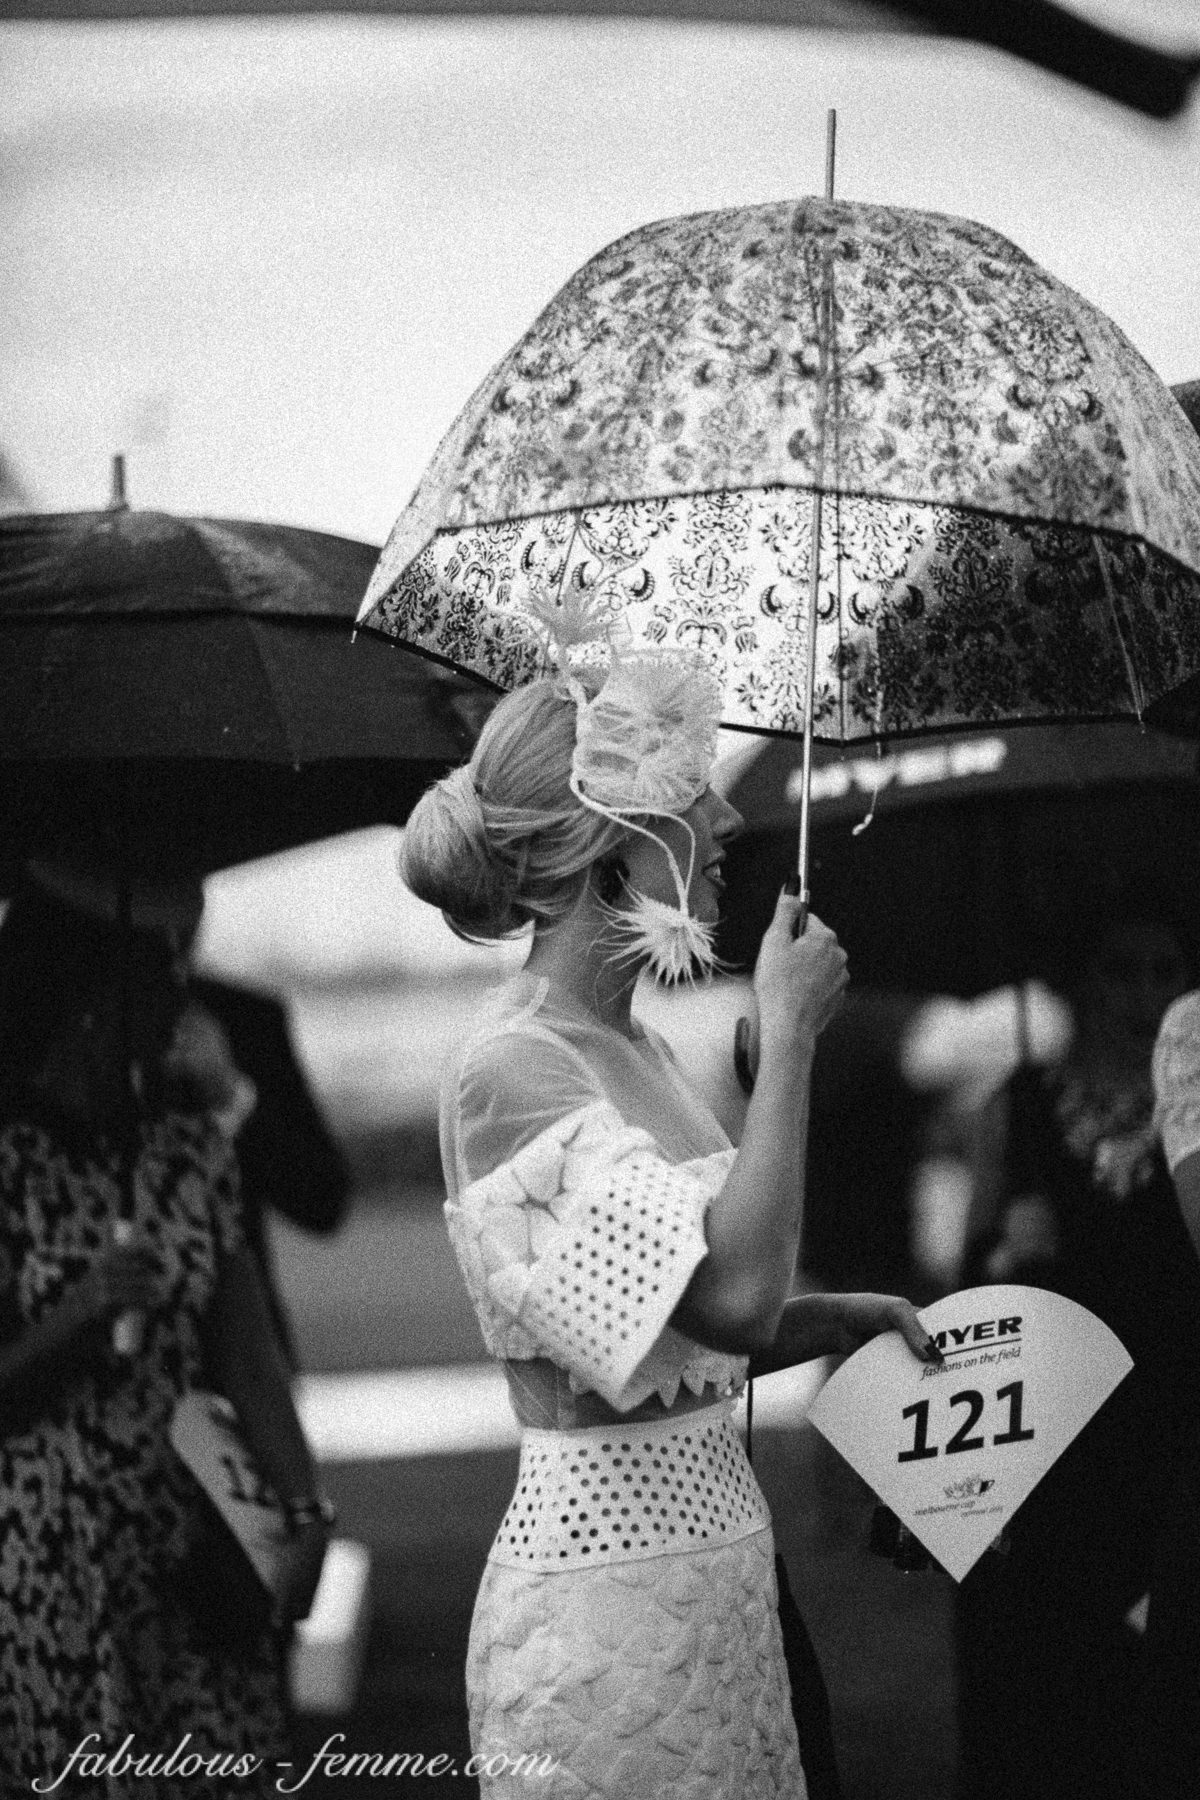 commercial events photography - melbourne Cup in rain